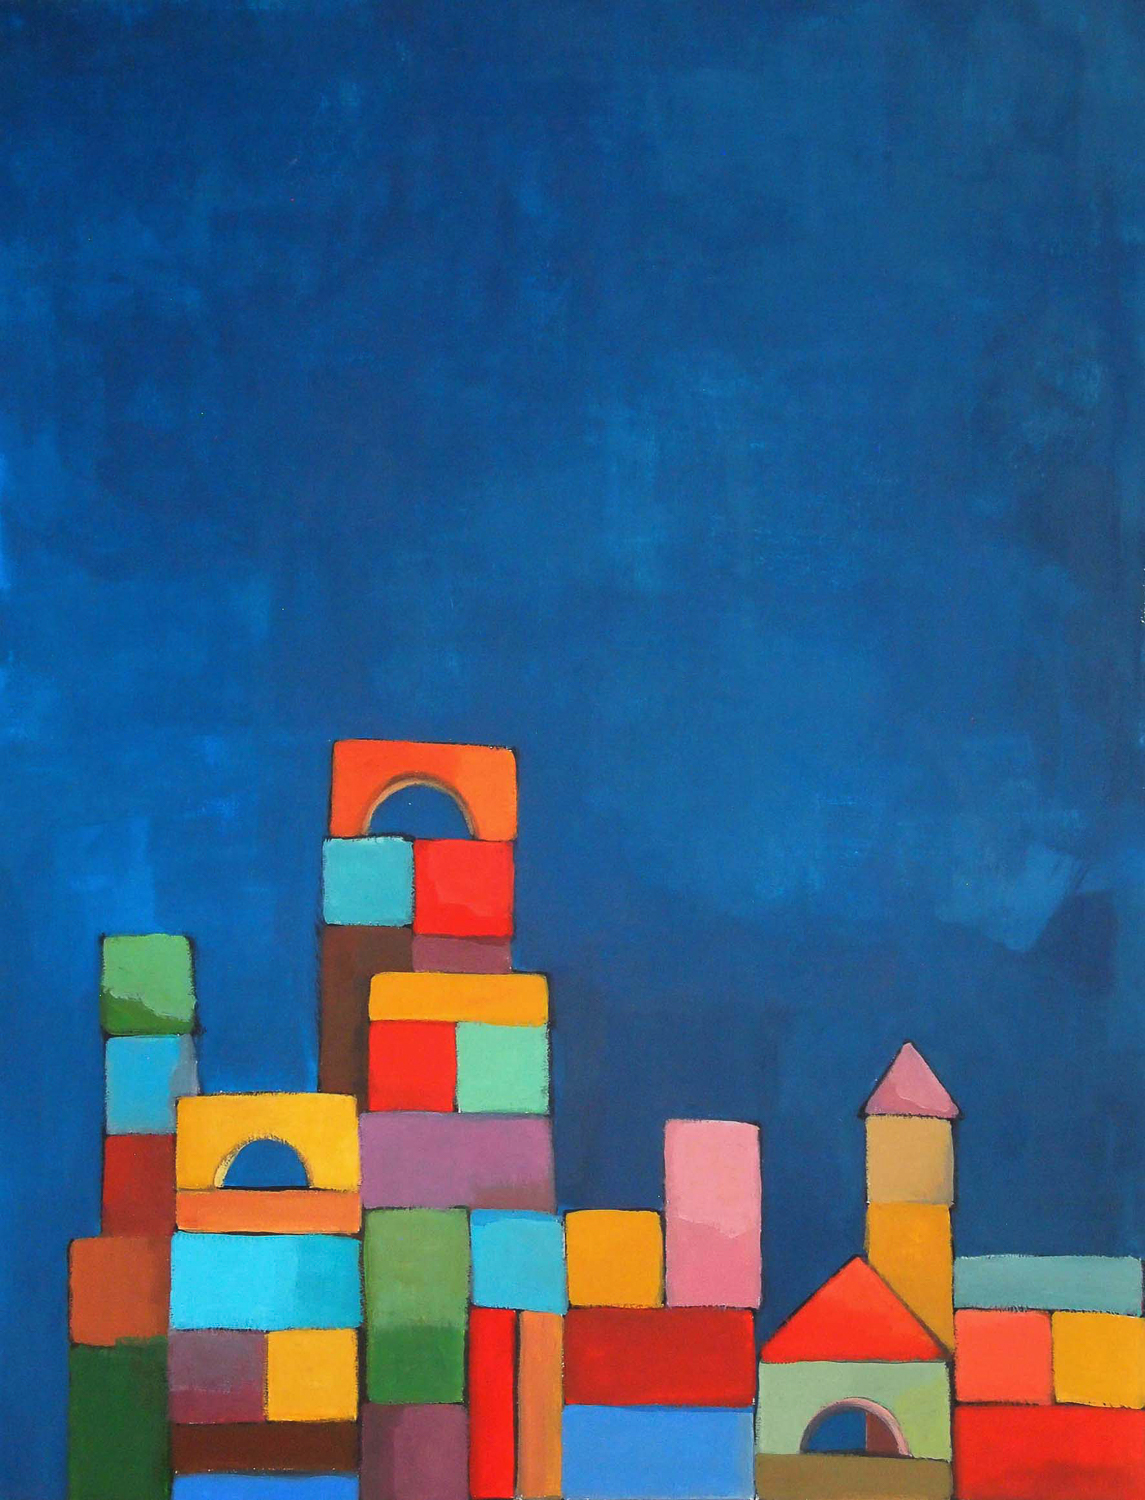 building bloks #3, 50x65 cm, aquarelle sur papier/water-color on paper